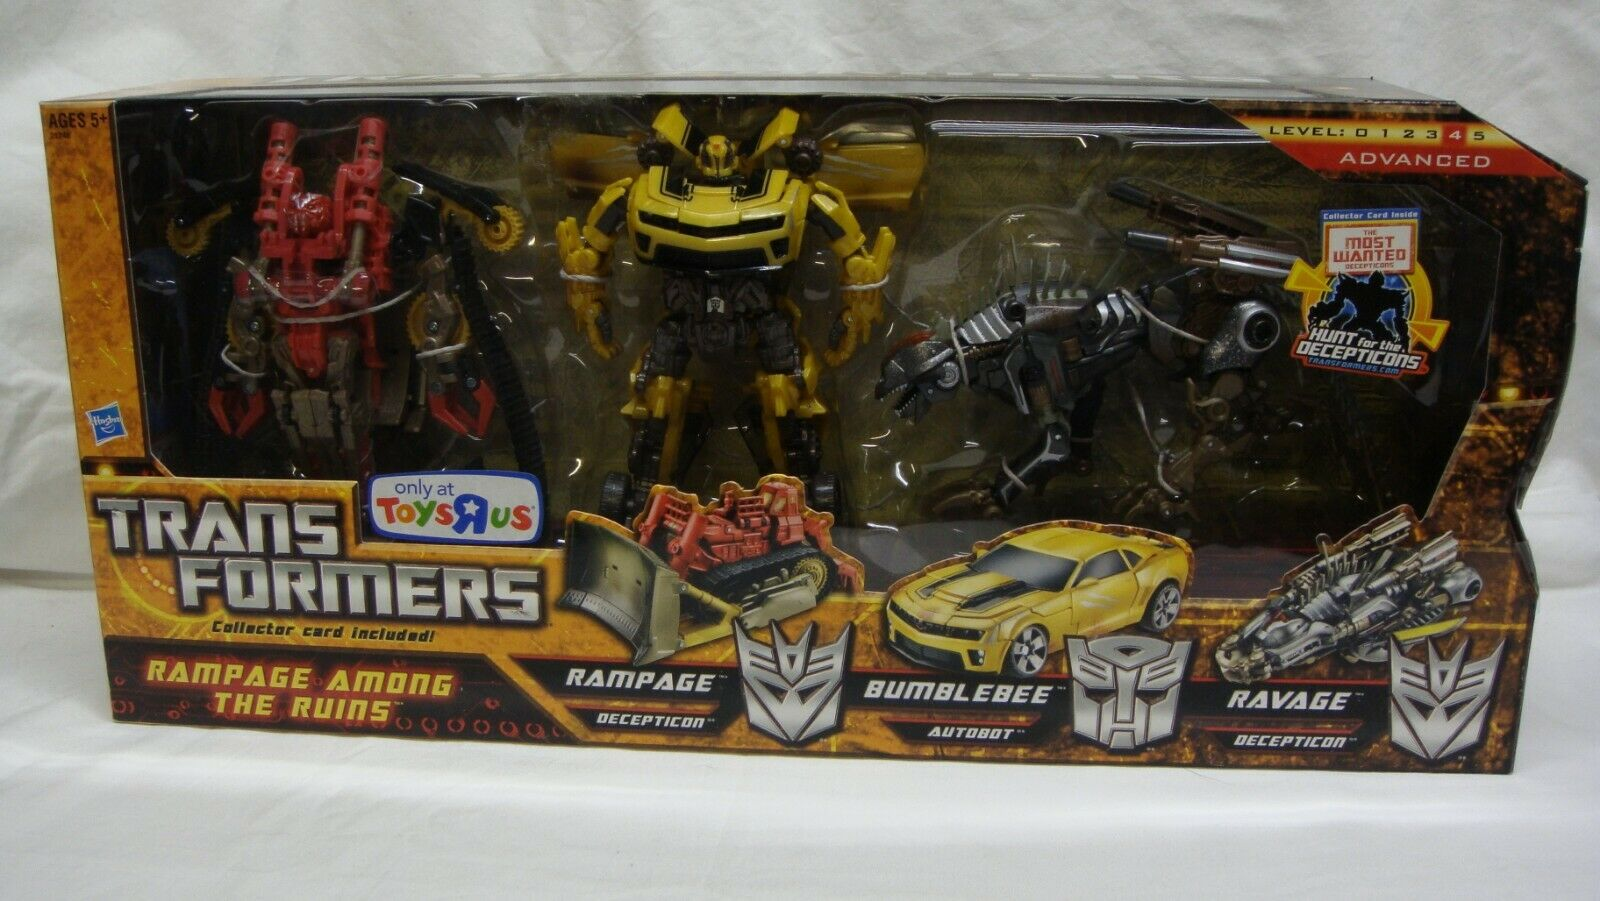 TRANSFORMERS HUNT FOR THE DECEPTICONS HFTD RAMPAGE AMONG THE RUINS TRU NEAR MINT